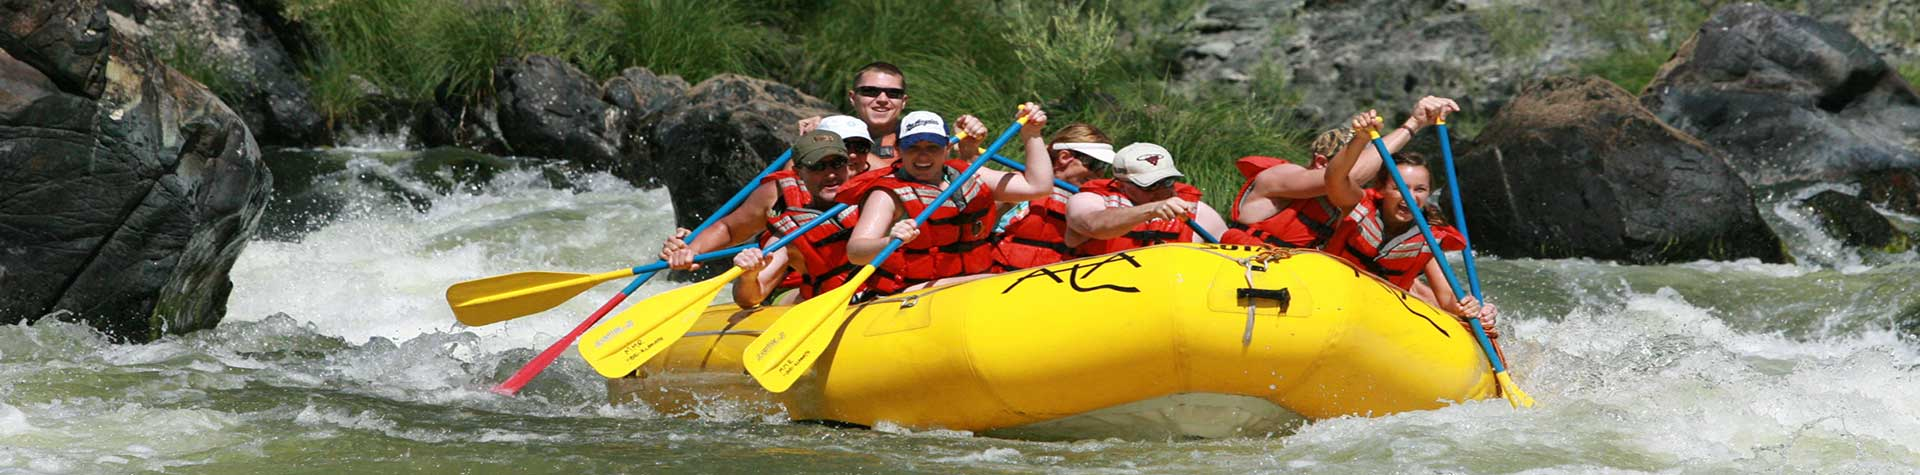 Rafting at Dude Ranches